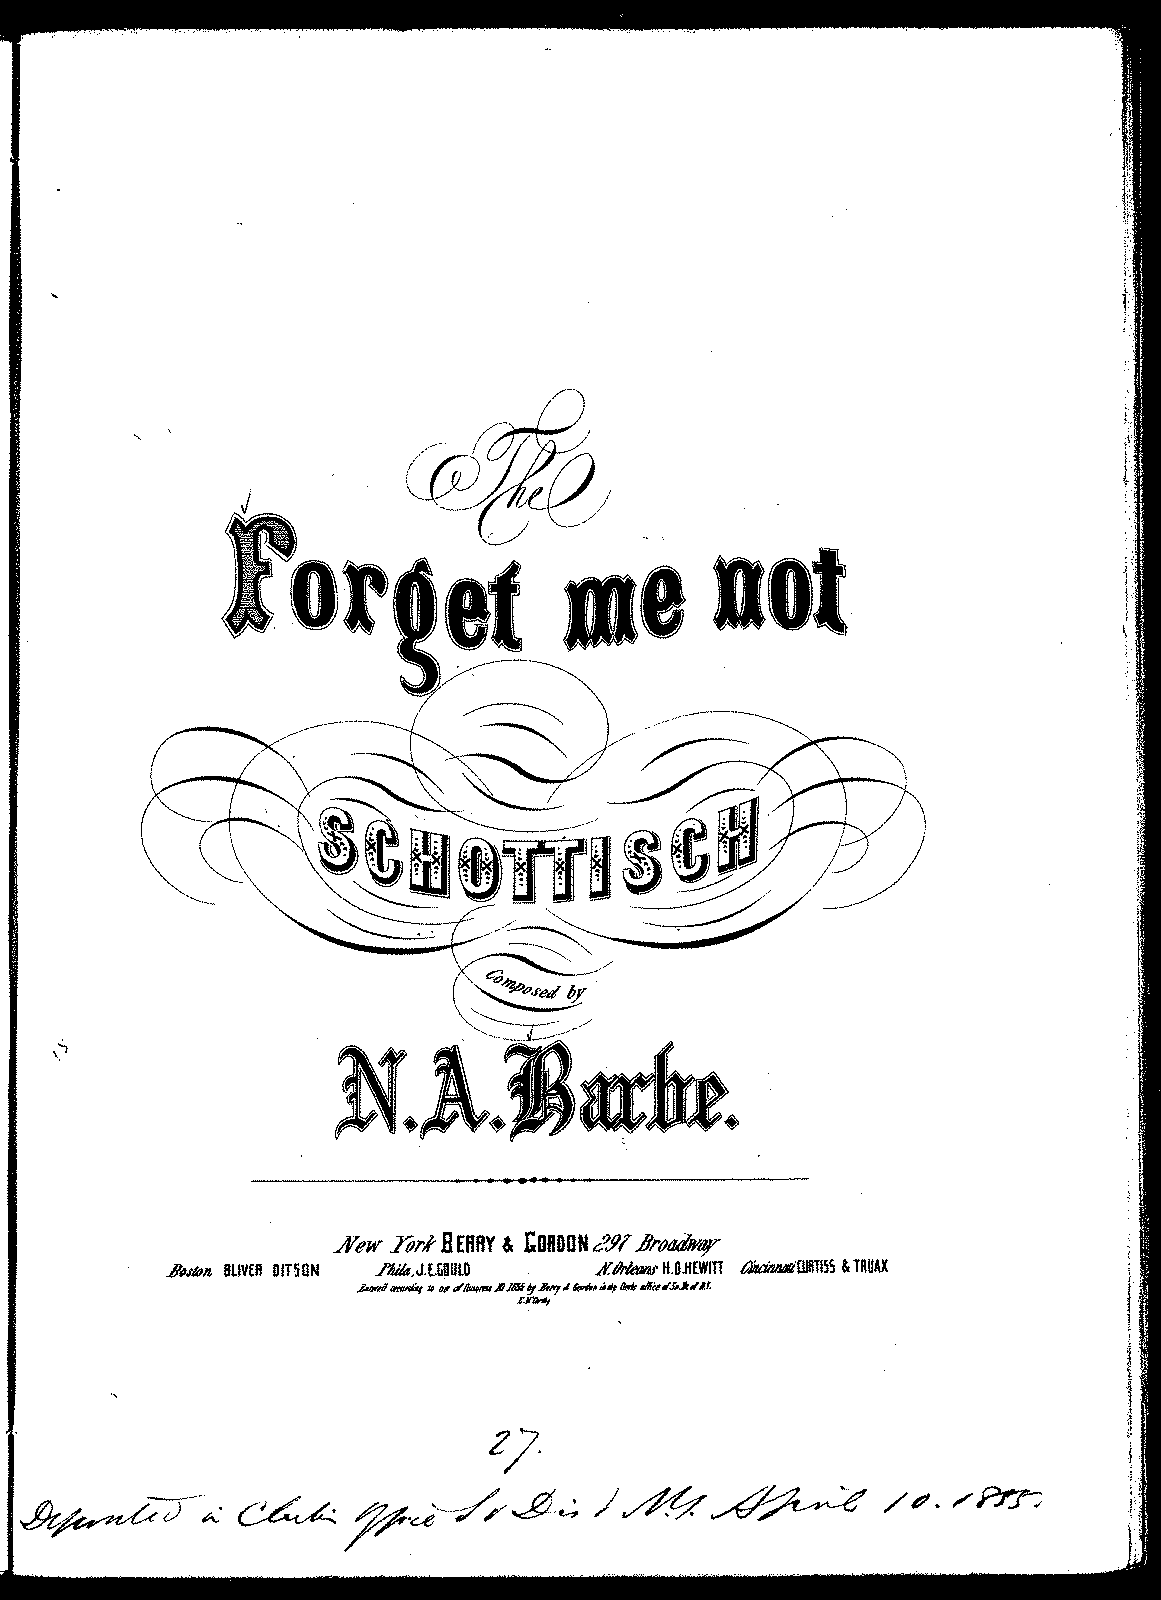 PMLP587971-BarbeNA ForgetMeNotSchottisch.pdf